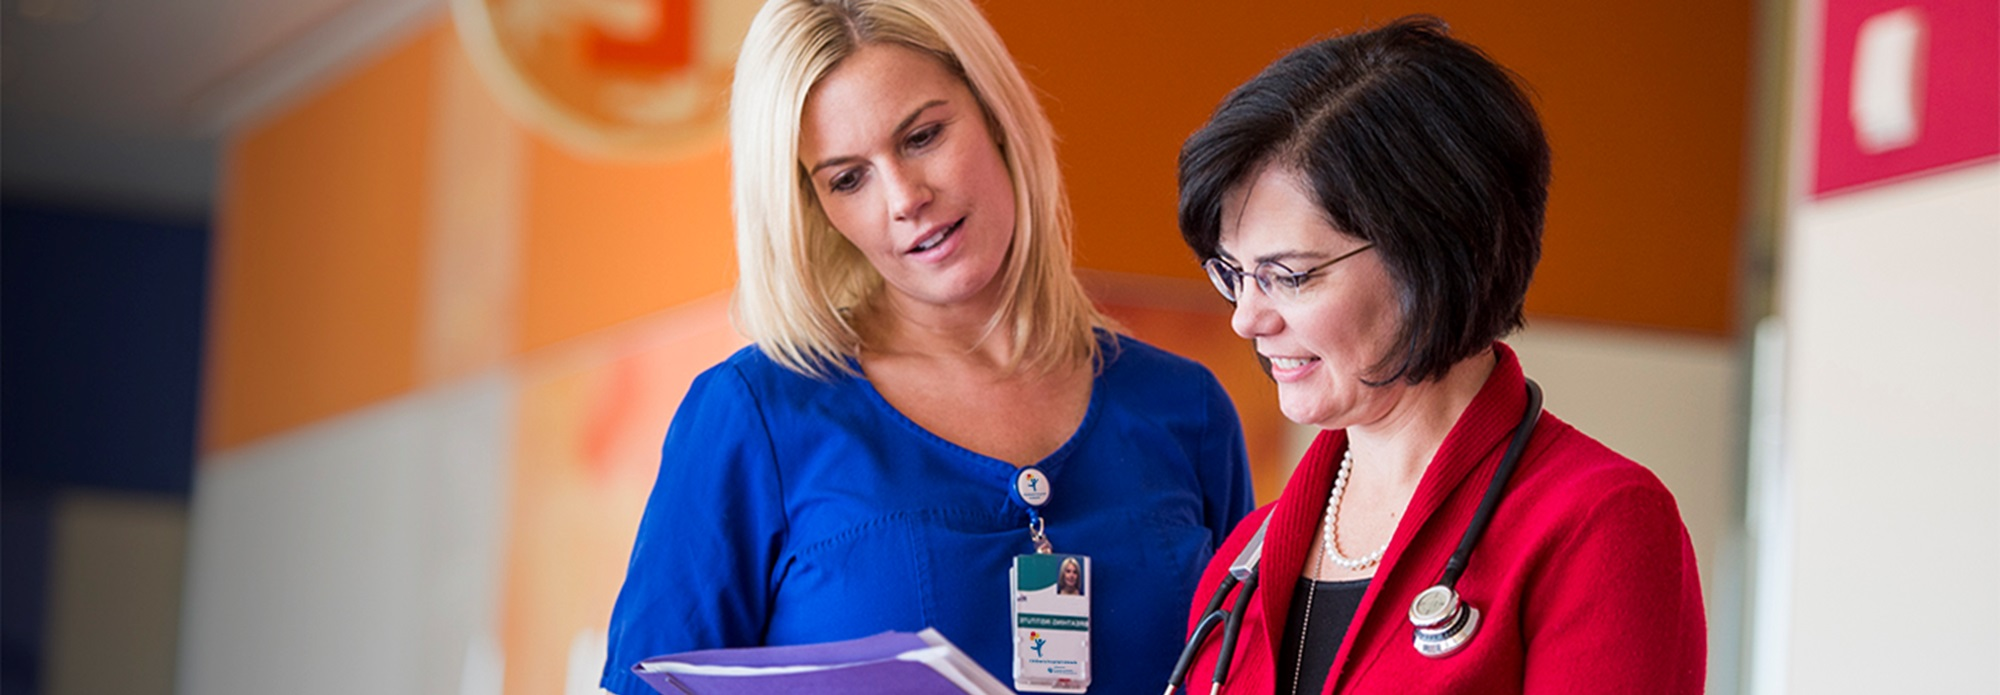 Two women healthcare professionals looking at a medical chart.